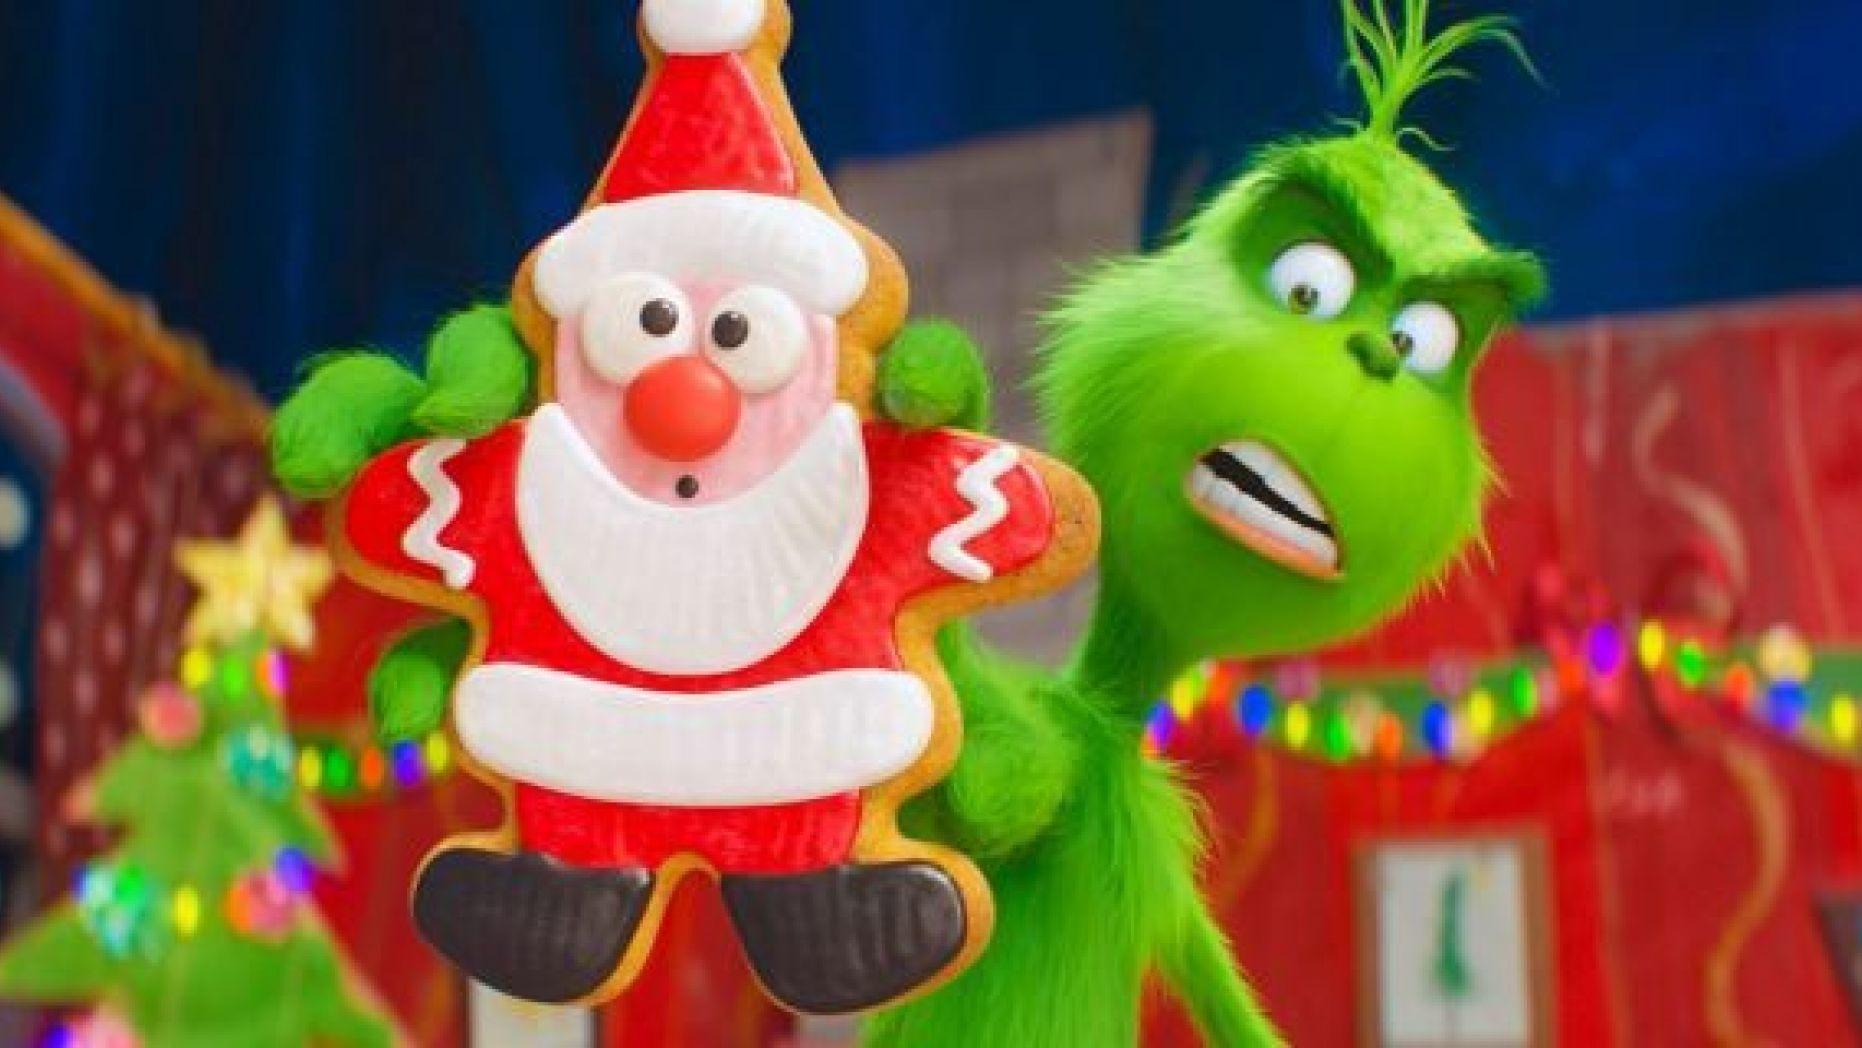 """This image released by Universal Pictures shows the character Grinch, voiced by Benedict Cumberbatch, in a scene from """"The Grinch."""" (Universal Pictures via AP)"""